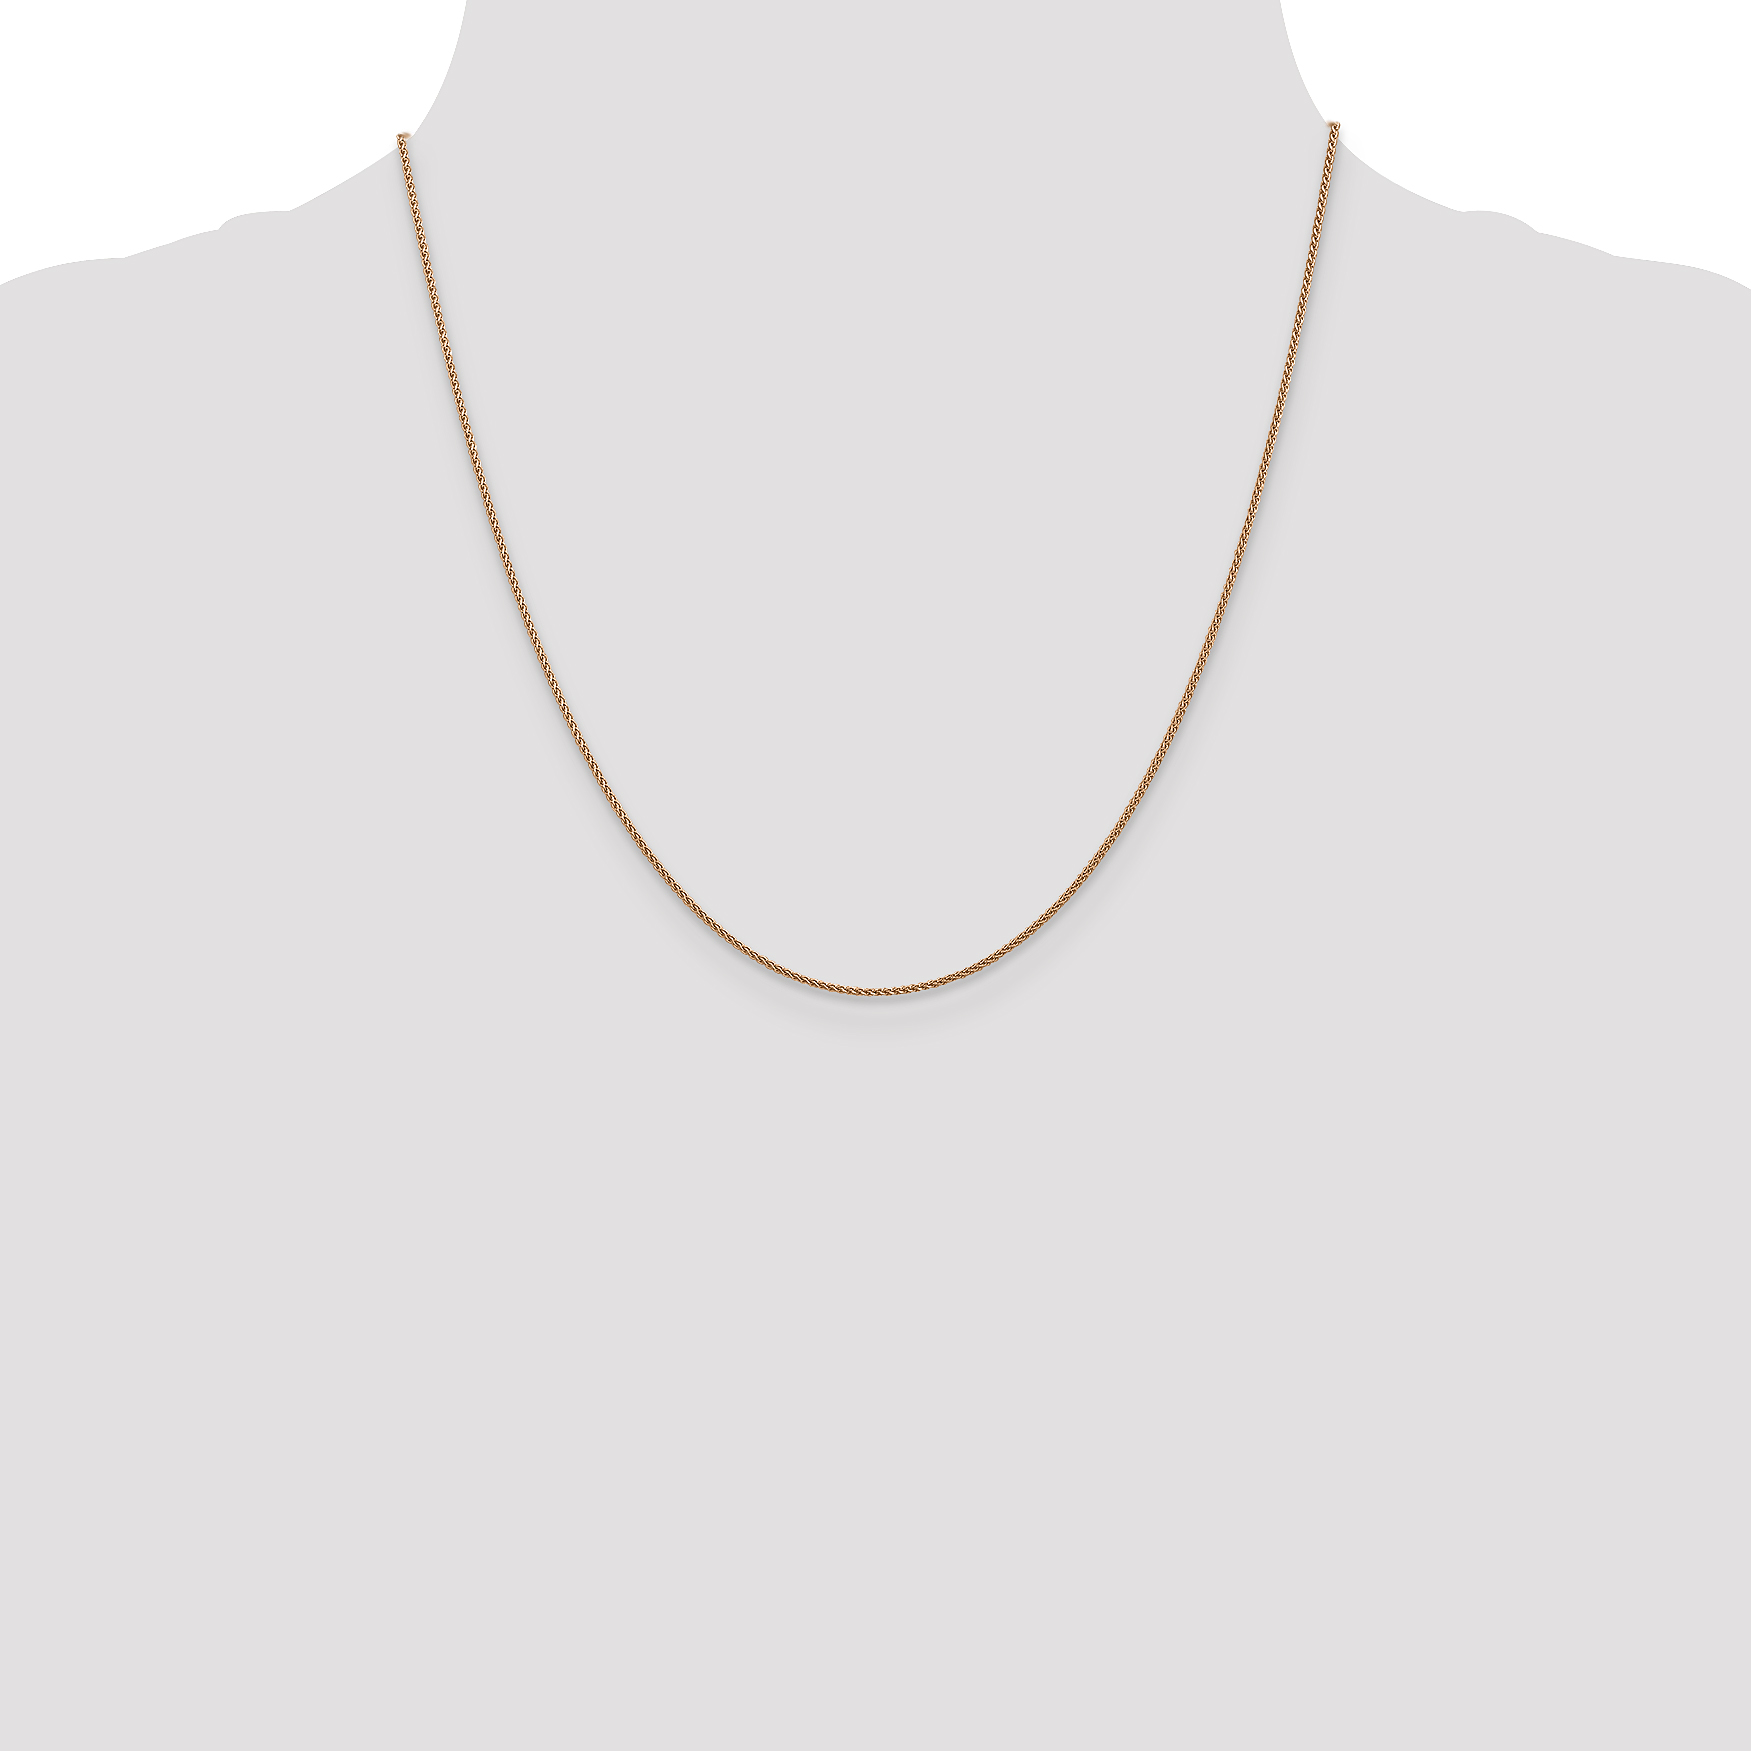 14k Rose Gold 1mm Spiga Link Wheat Chain Necklace 20 Inch Pendant Charm Spiga/wheat Fine Jewelry Gifts For Women For Her - image 2 de 5